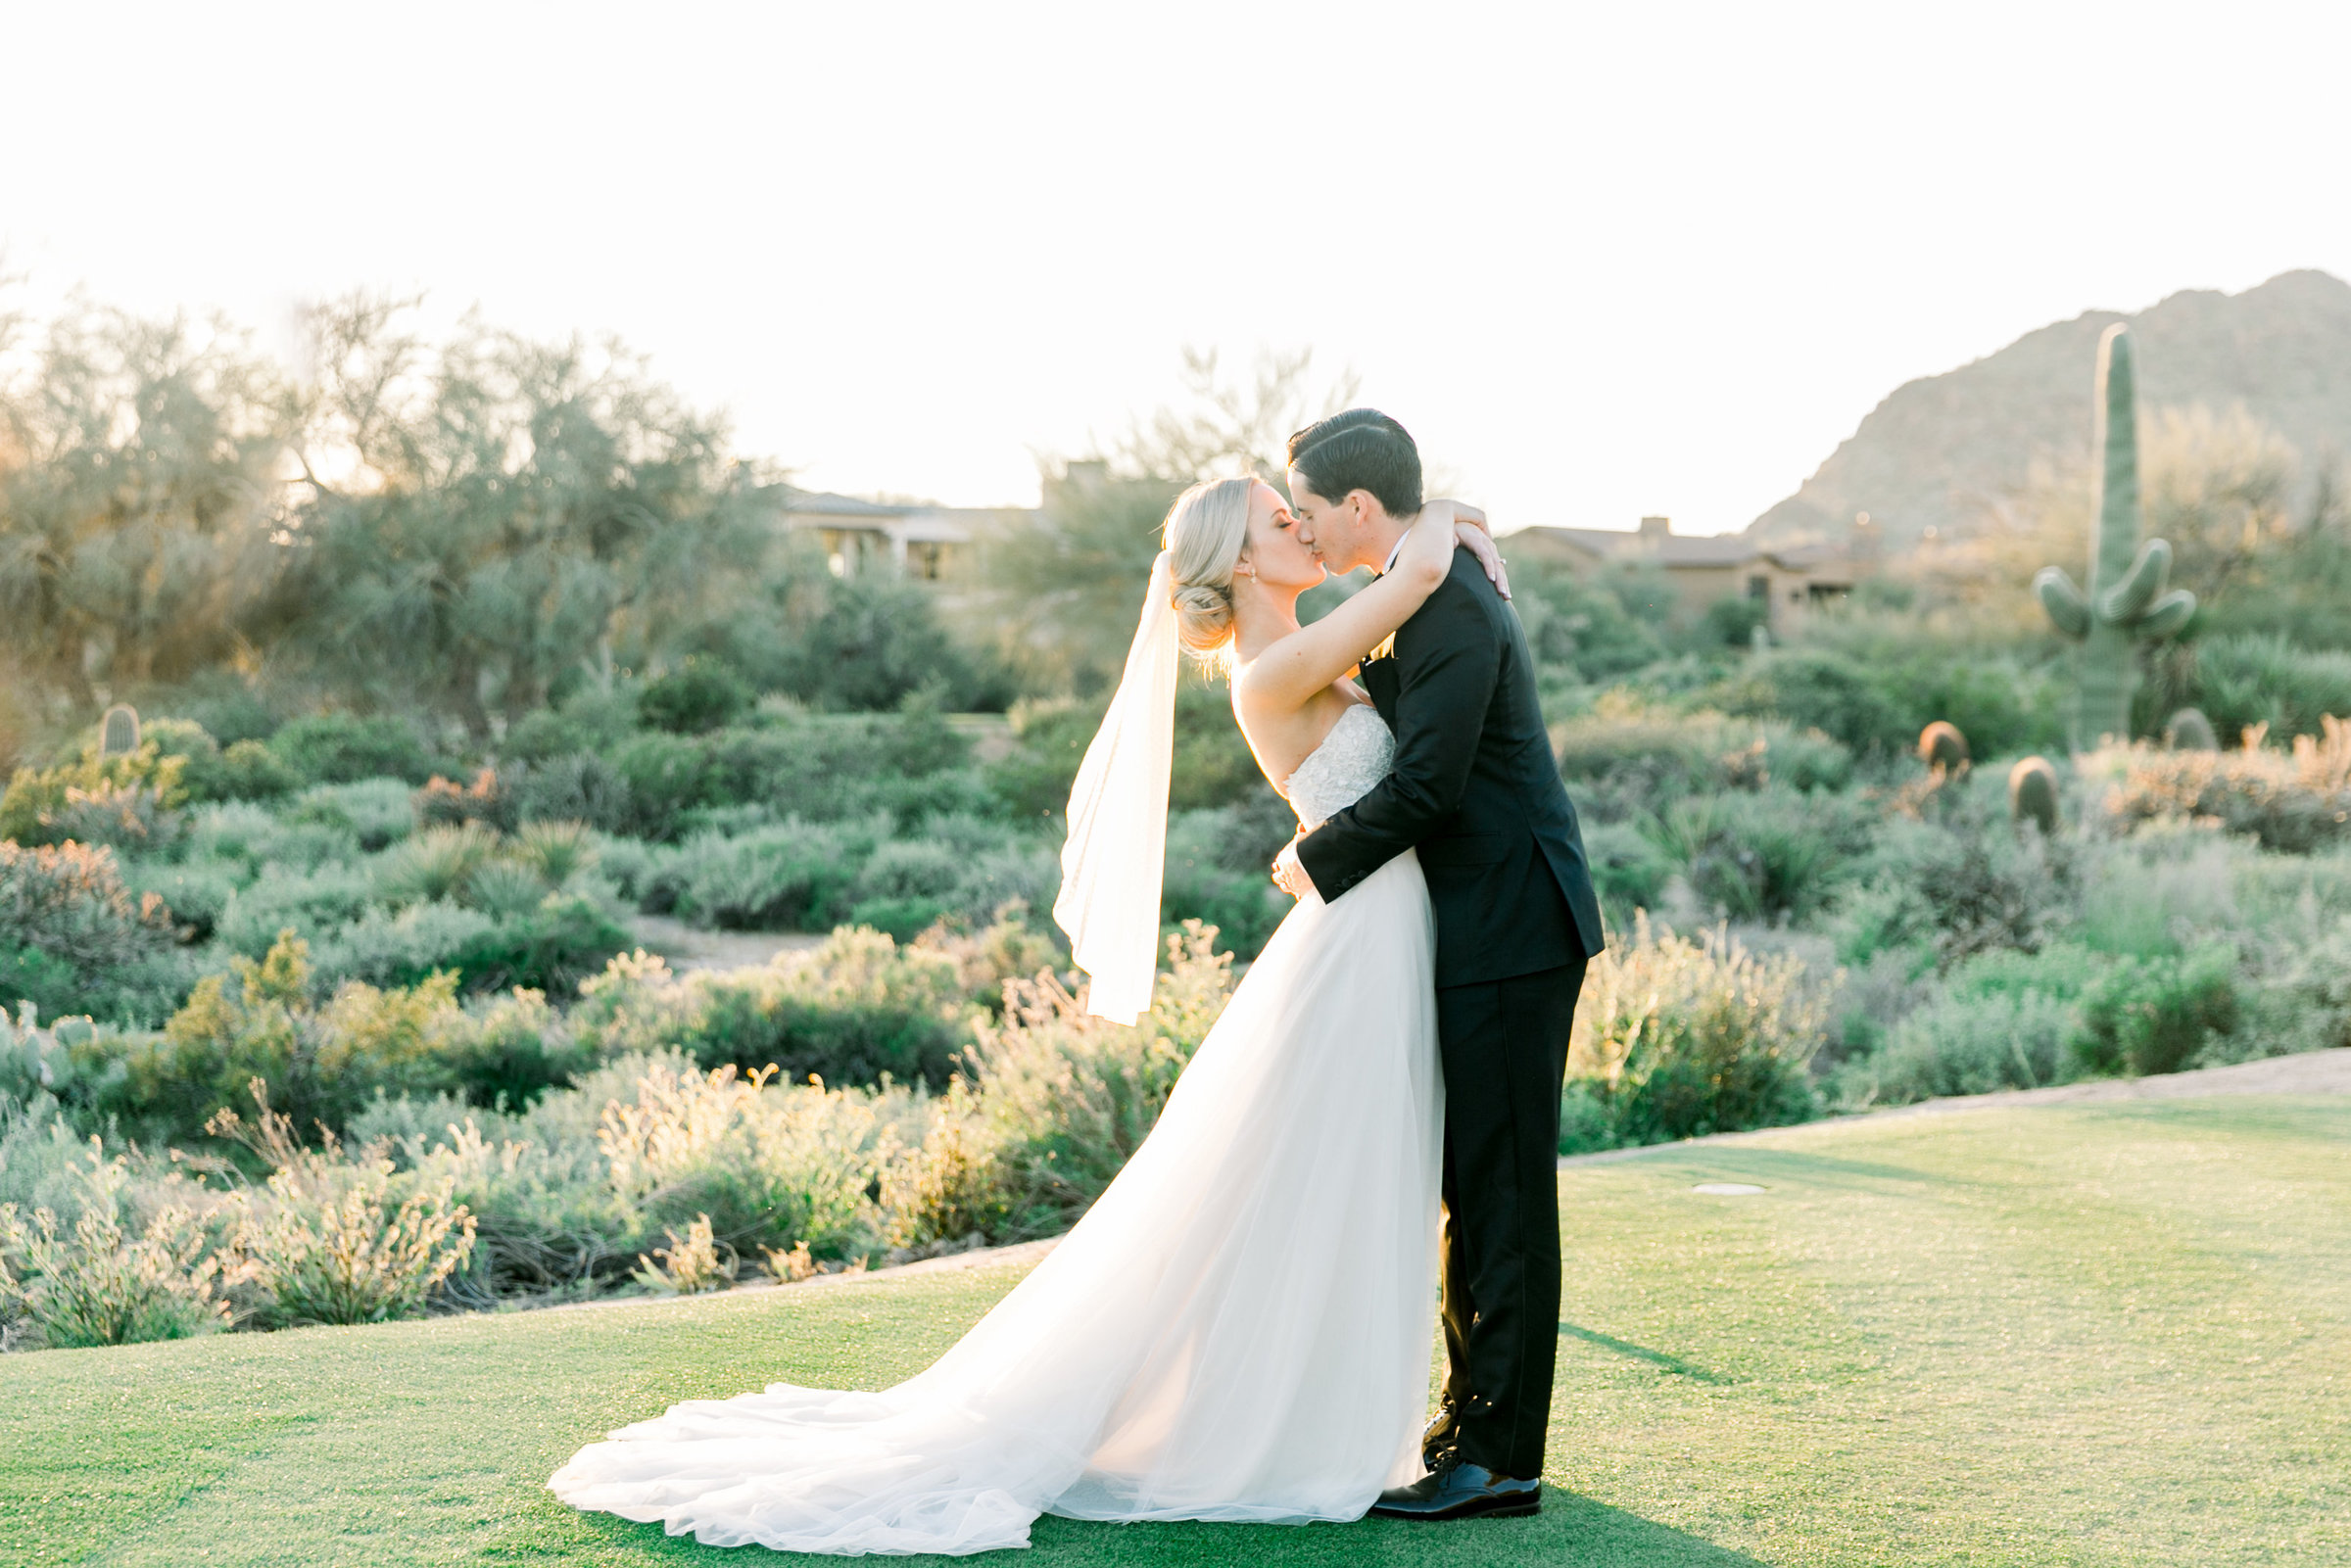 Karlie Colleen Photography - Arizona Wedding at The Troon Scottsdale Country Club - Paige & Shane -661